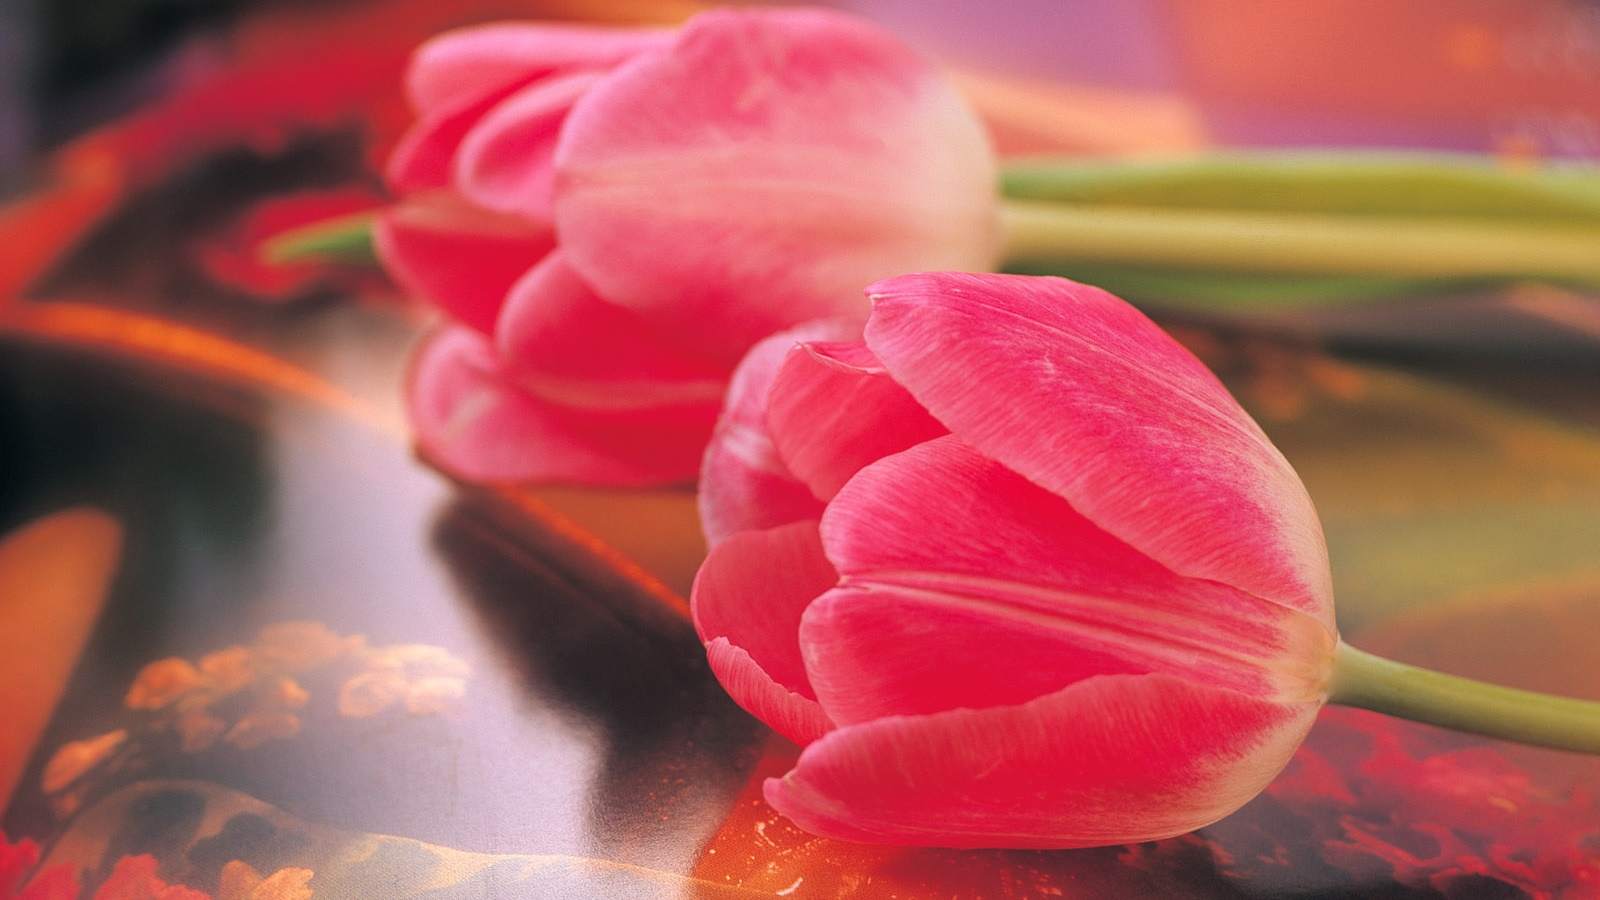 Pink tulips, flower close-up 1600x900 wallpaper